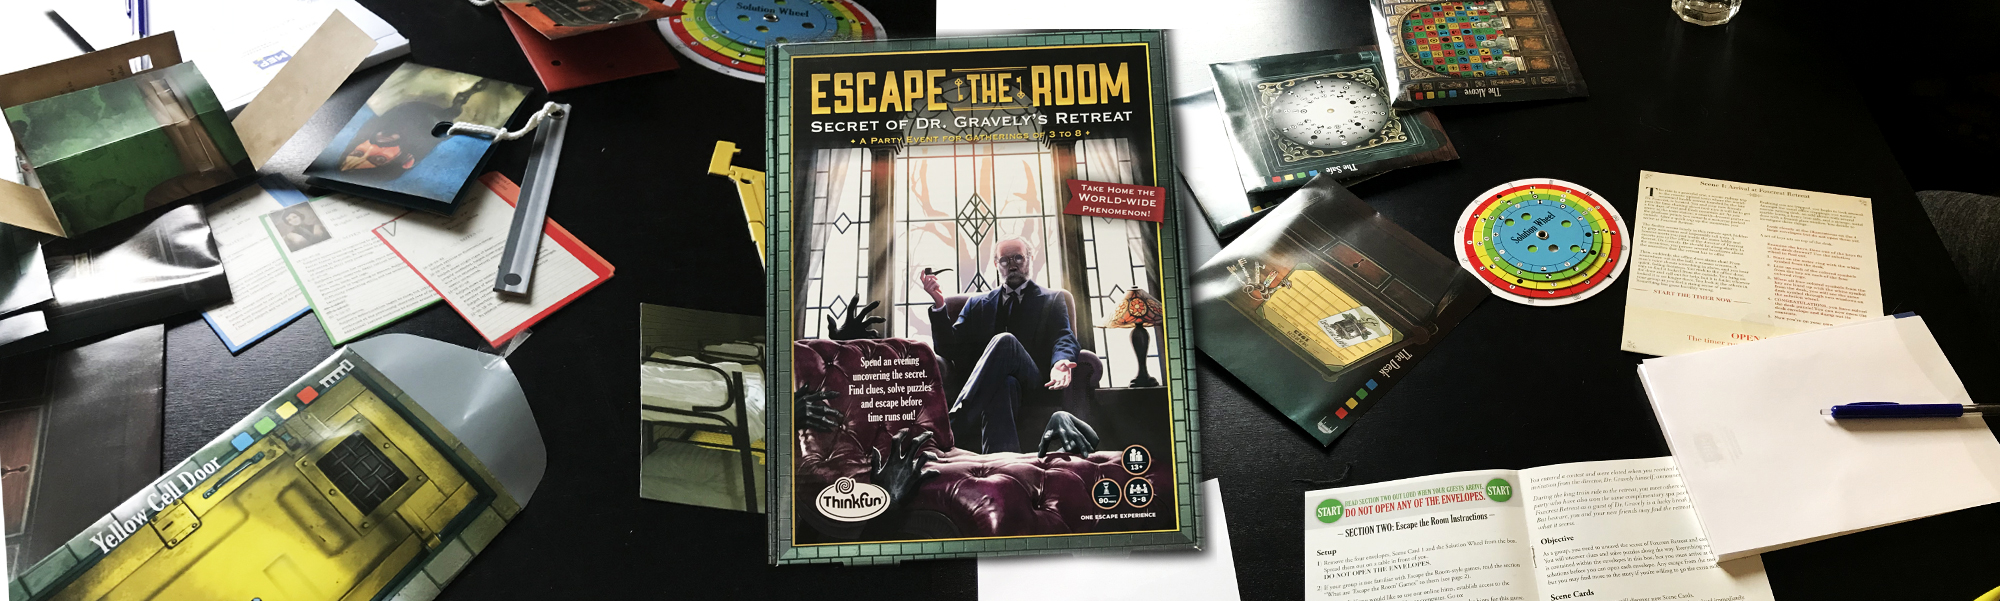 Escape The Room: Secret Of Dr. Gravely's Retreat